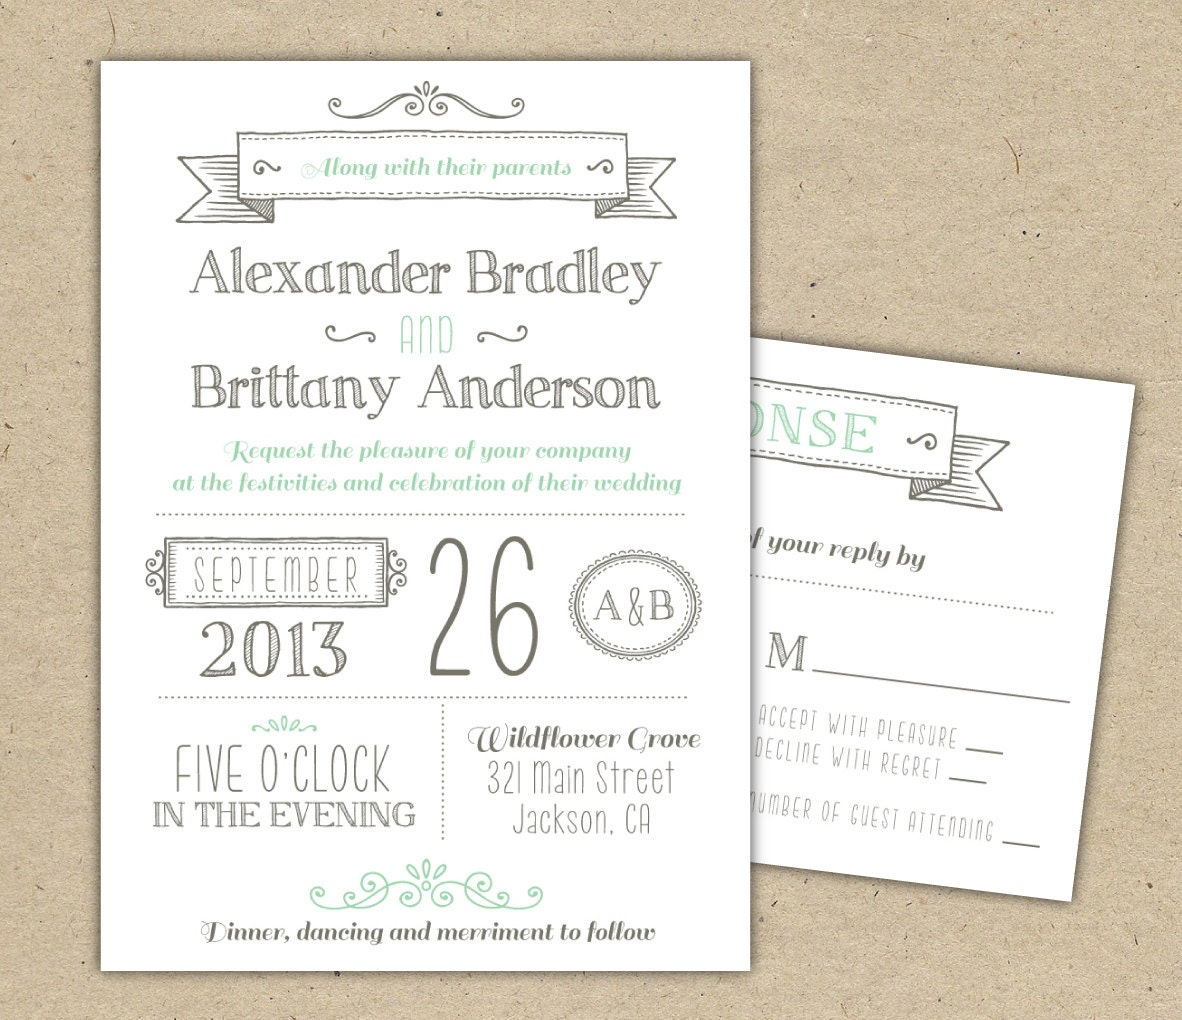 Wedding Invitation 1041 SAMPLE. Modern Invitation Template